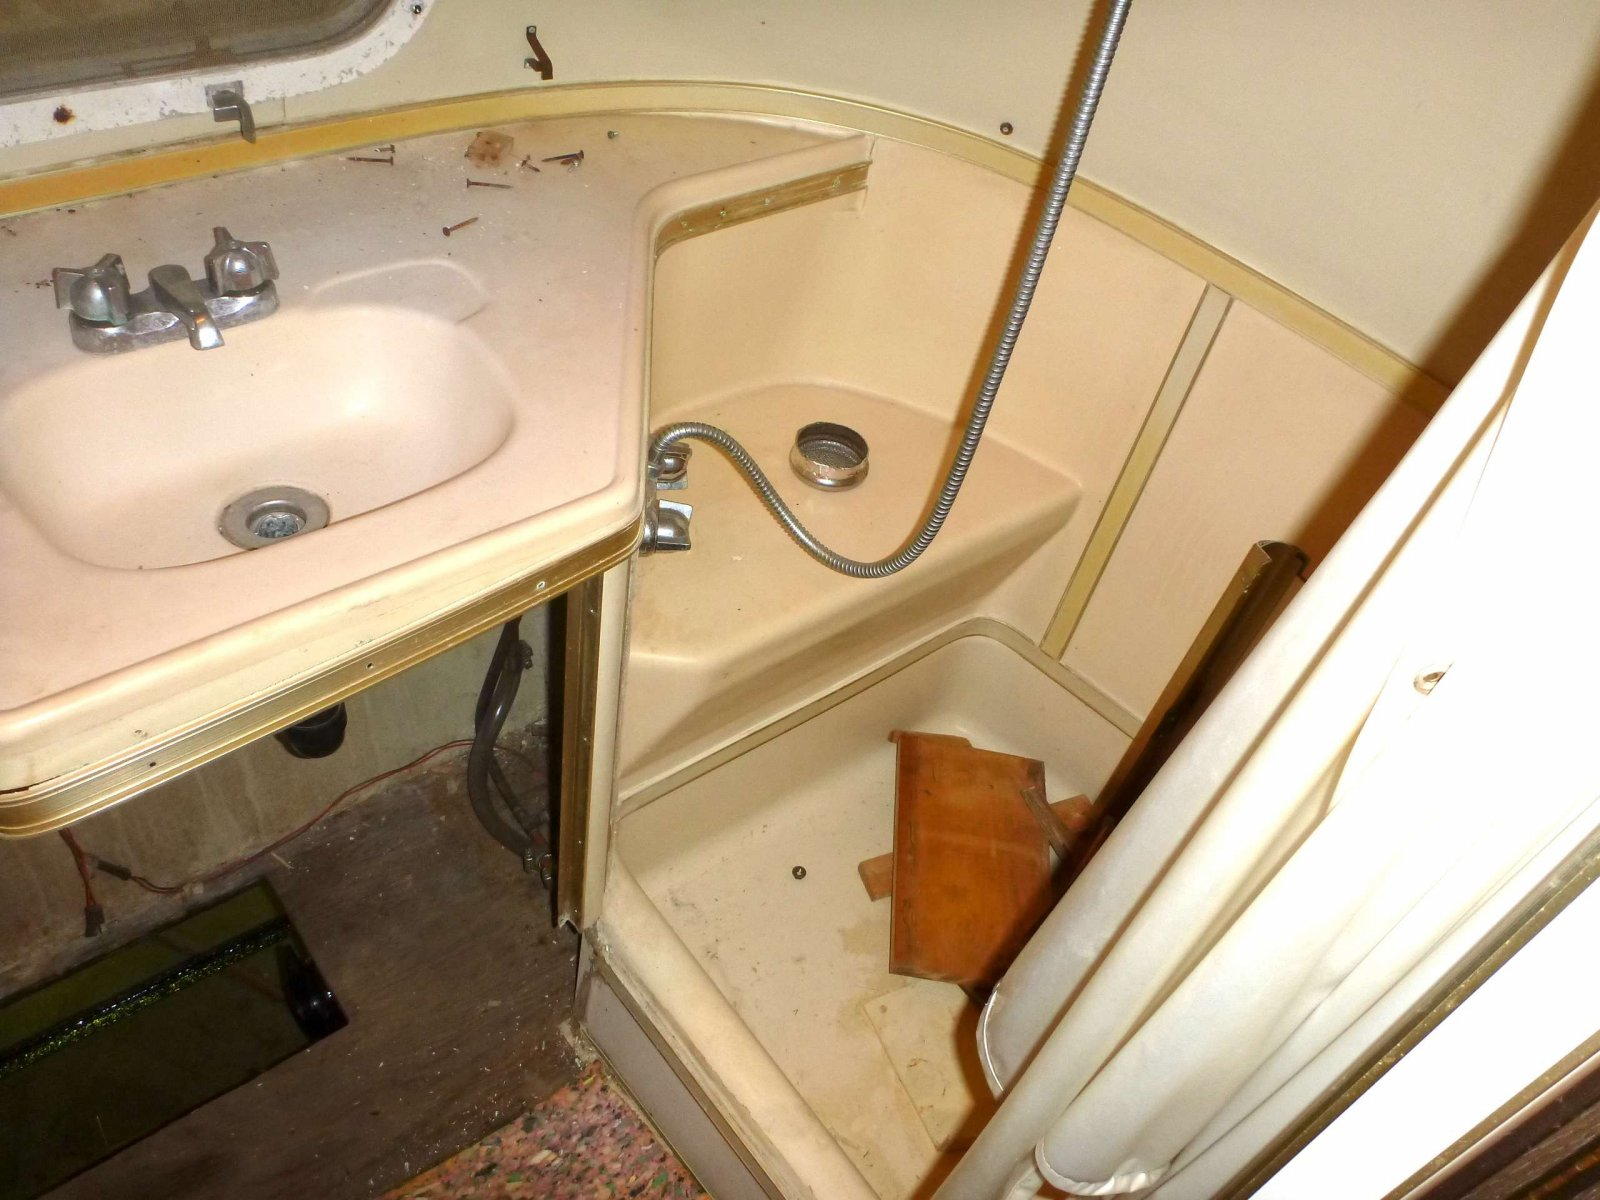 Click image for larger version  Name:Shower Sink No Tank.jpg Views:69 Size:242.5 KB ID:173656